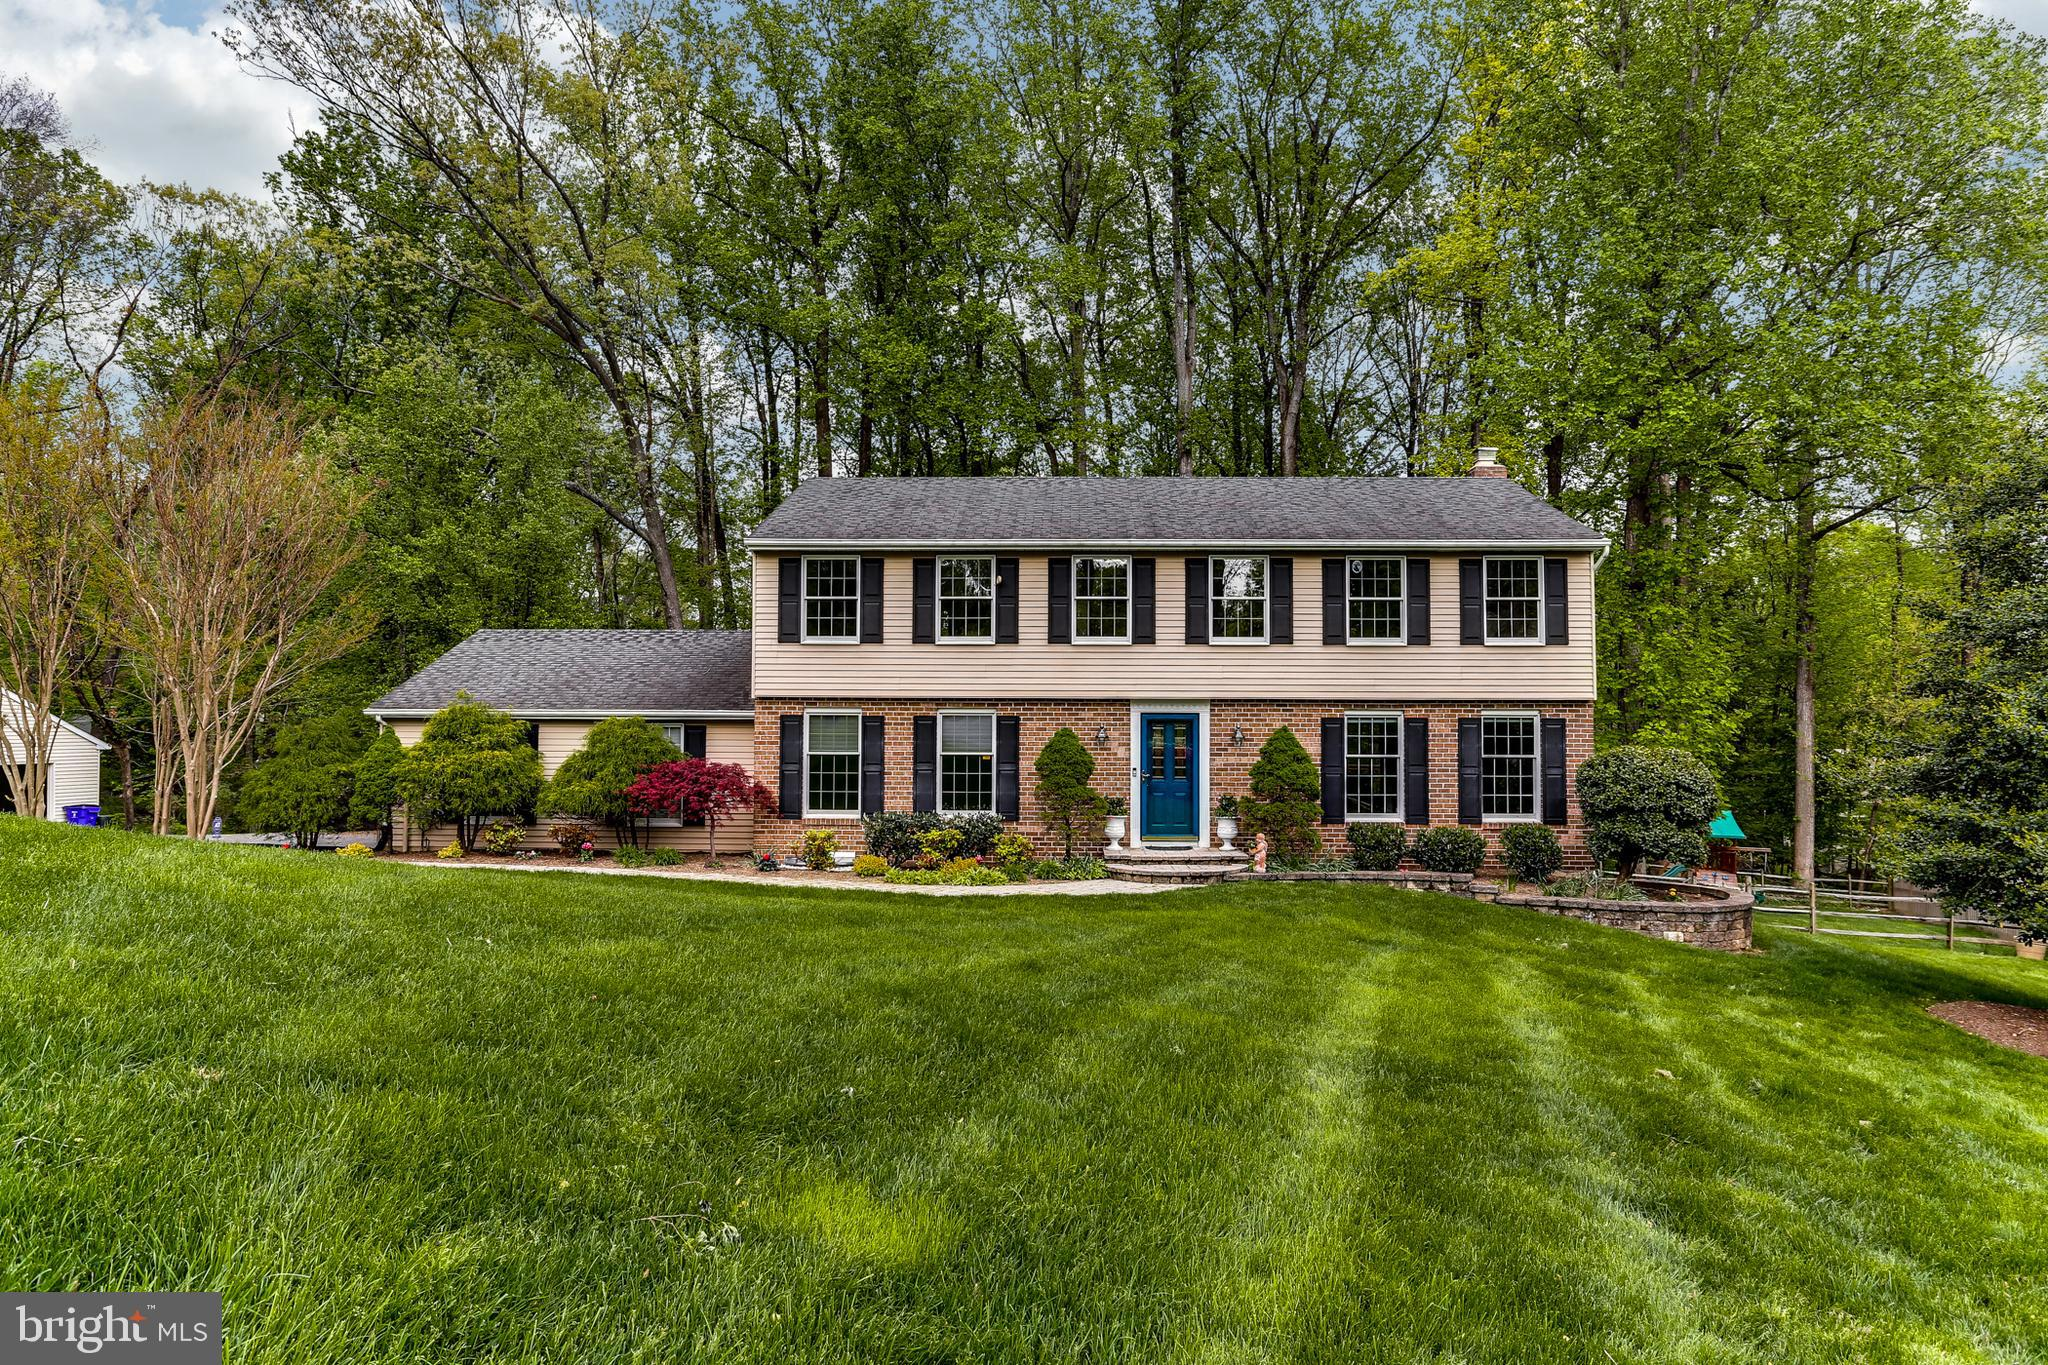 9903 FOXHILL COURT, ELLICOTT CITY, MD 21042